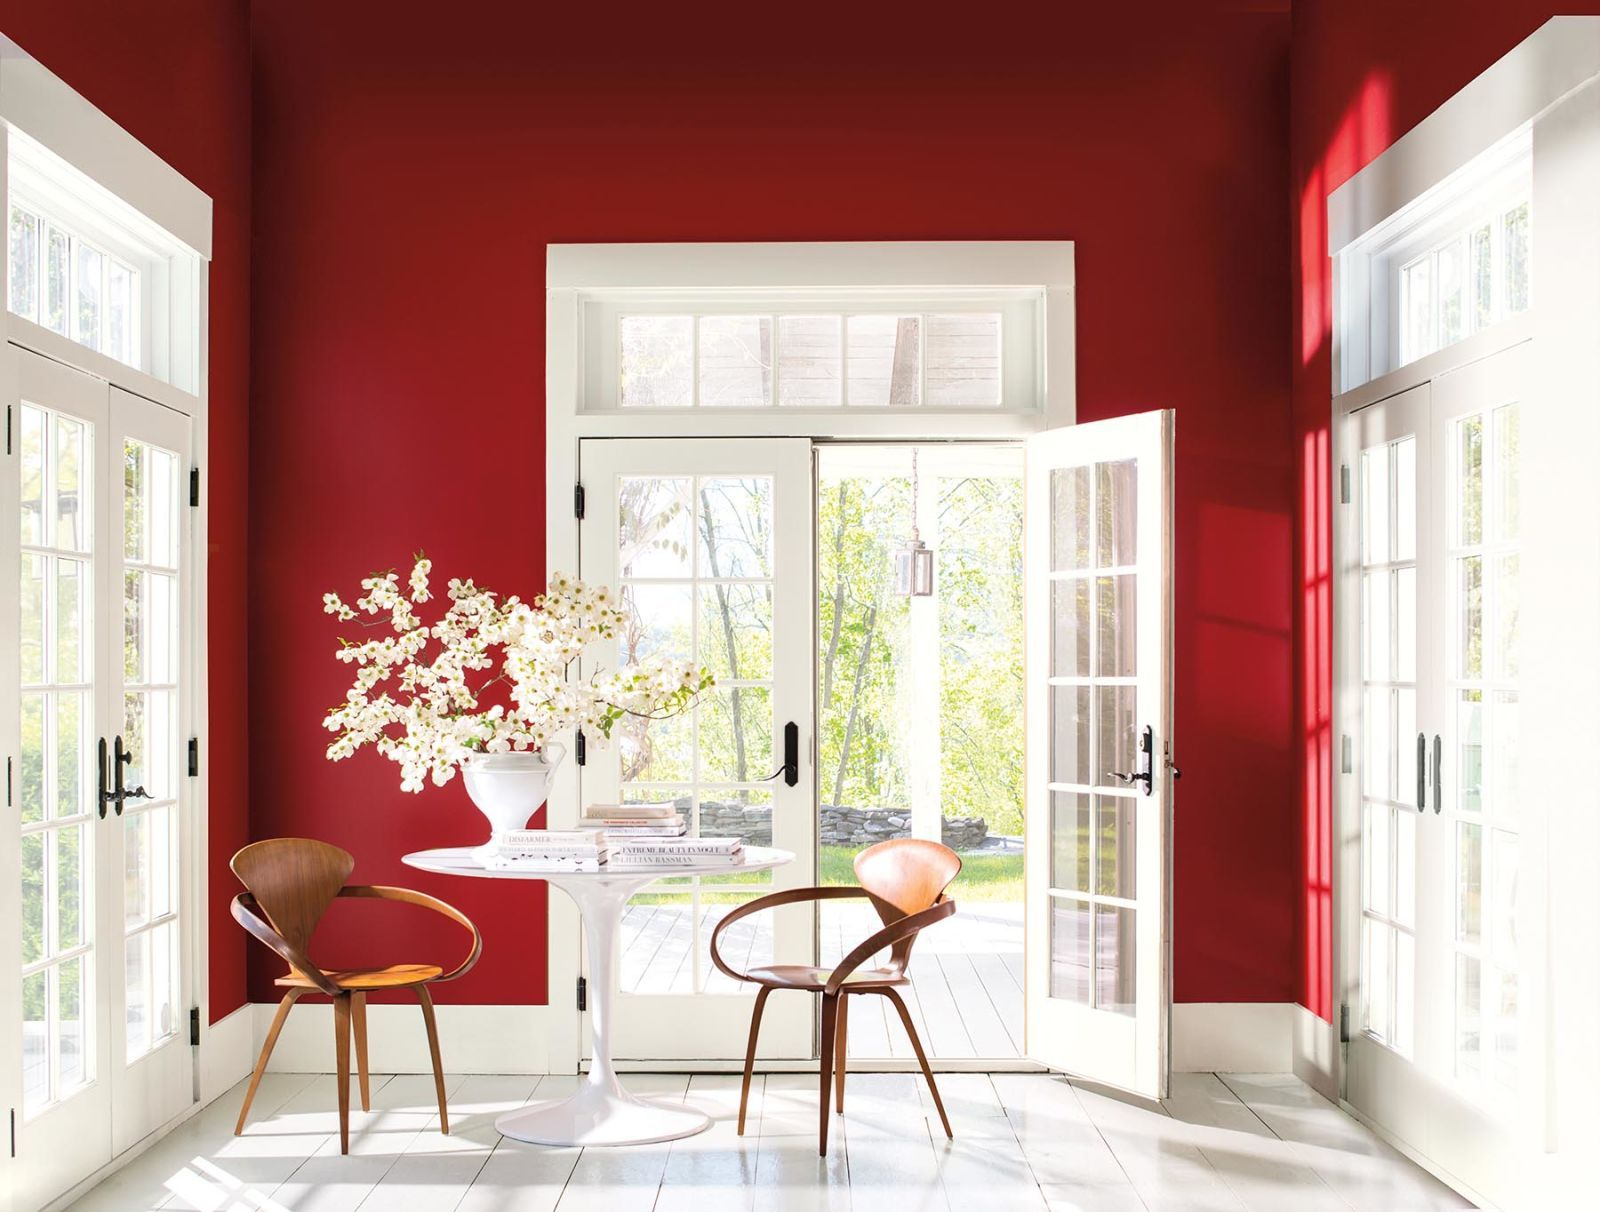 Einrichtungstrends 2018 Esszimmer Benjamin Moore S 2018 Color Of The Year Is Red Hot